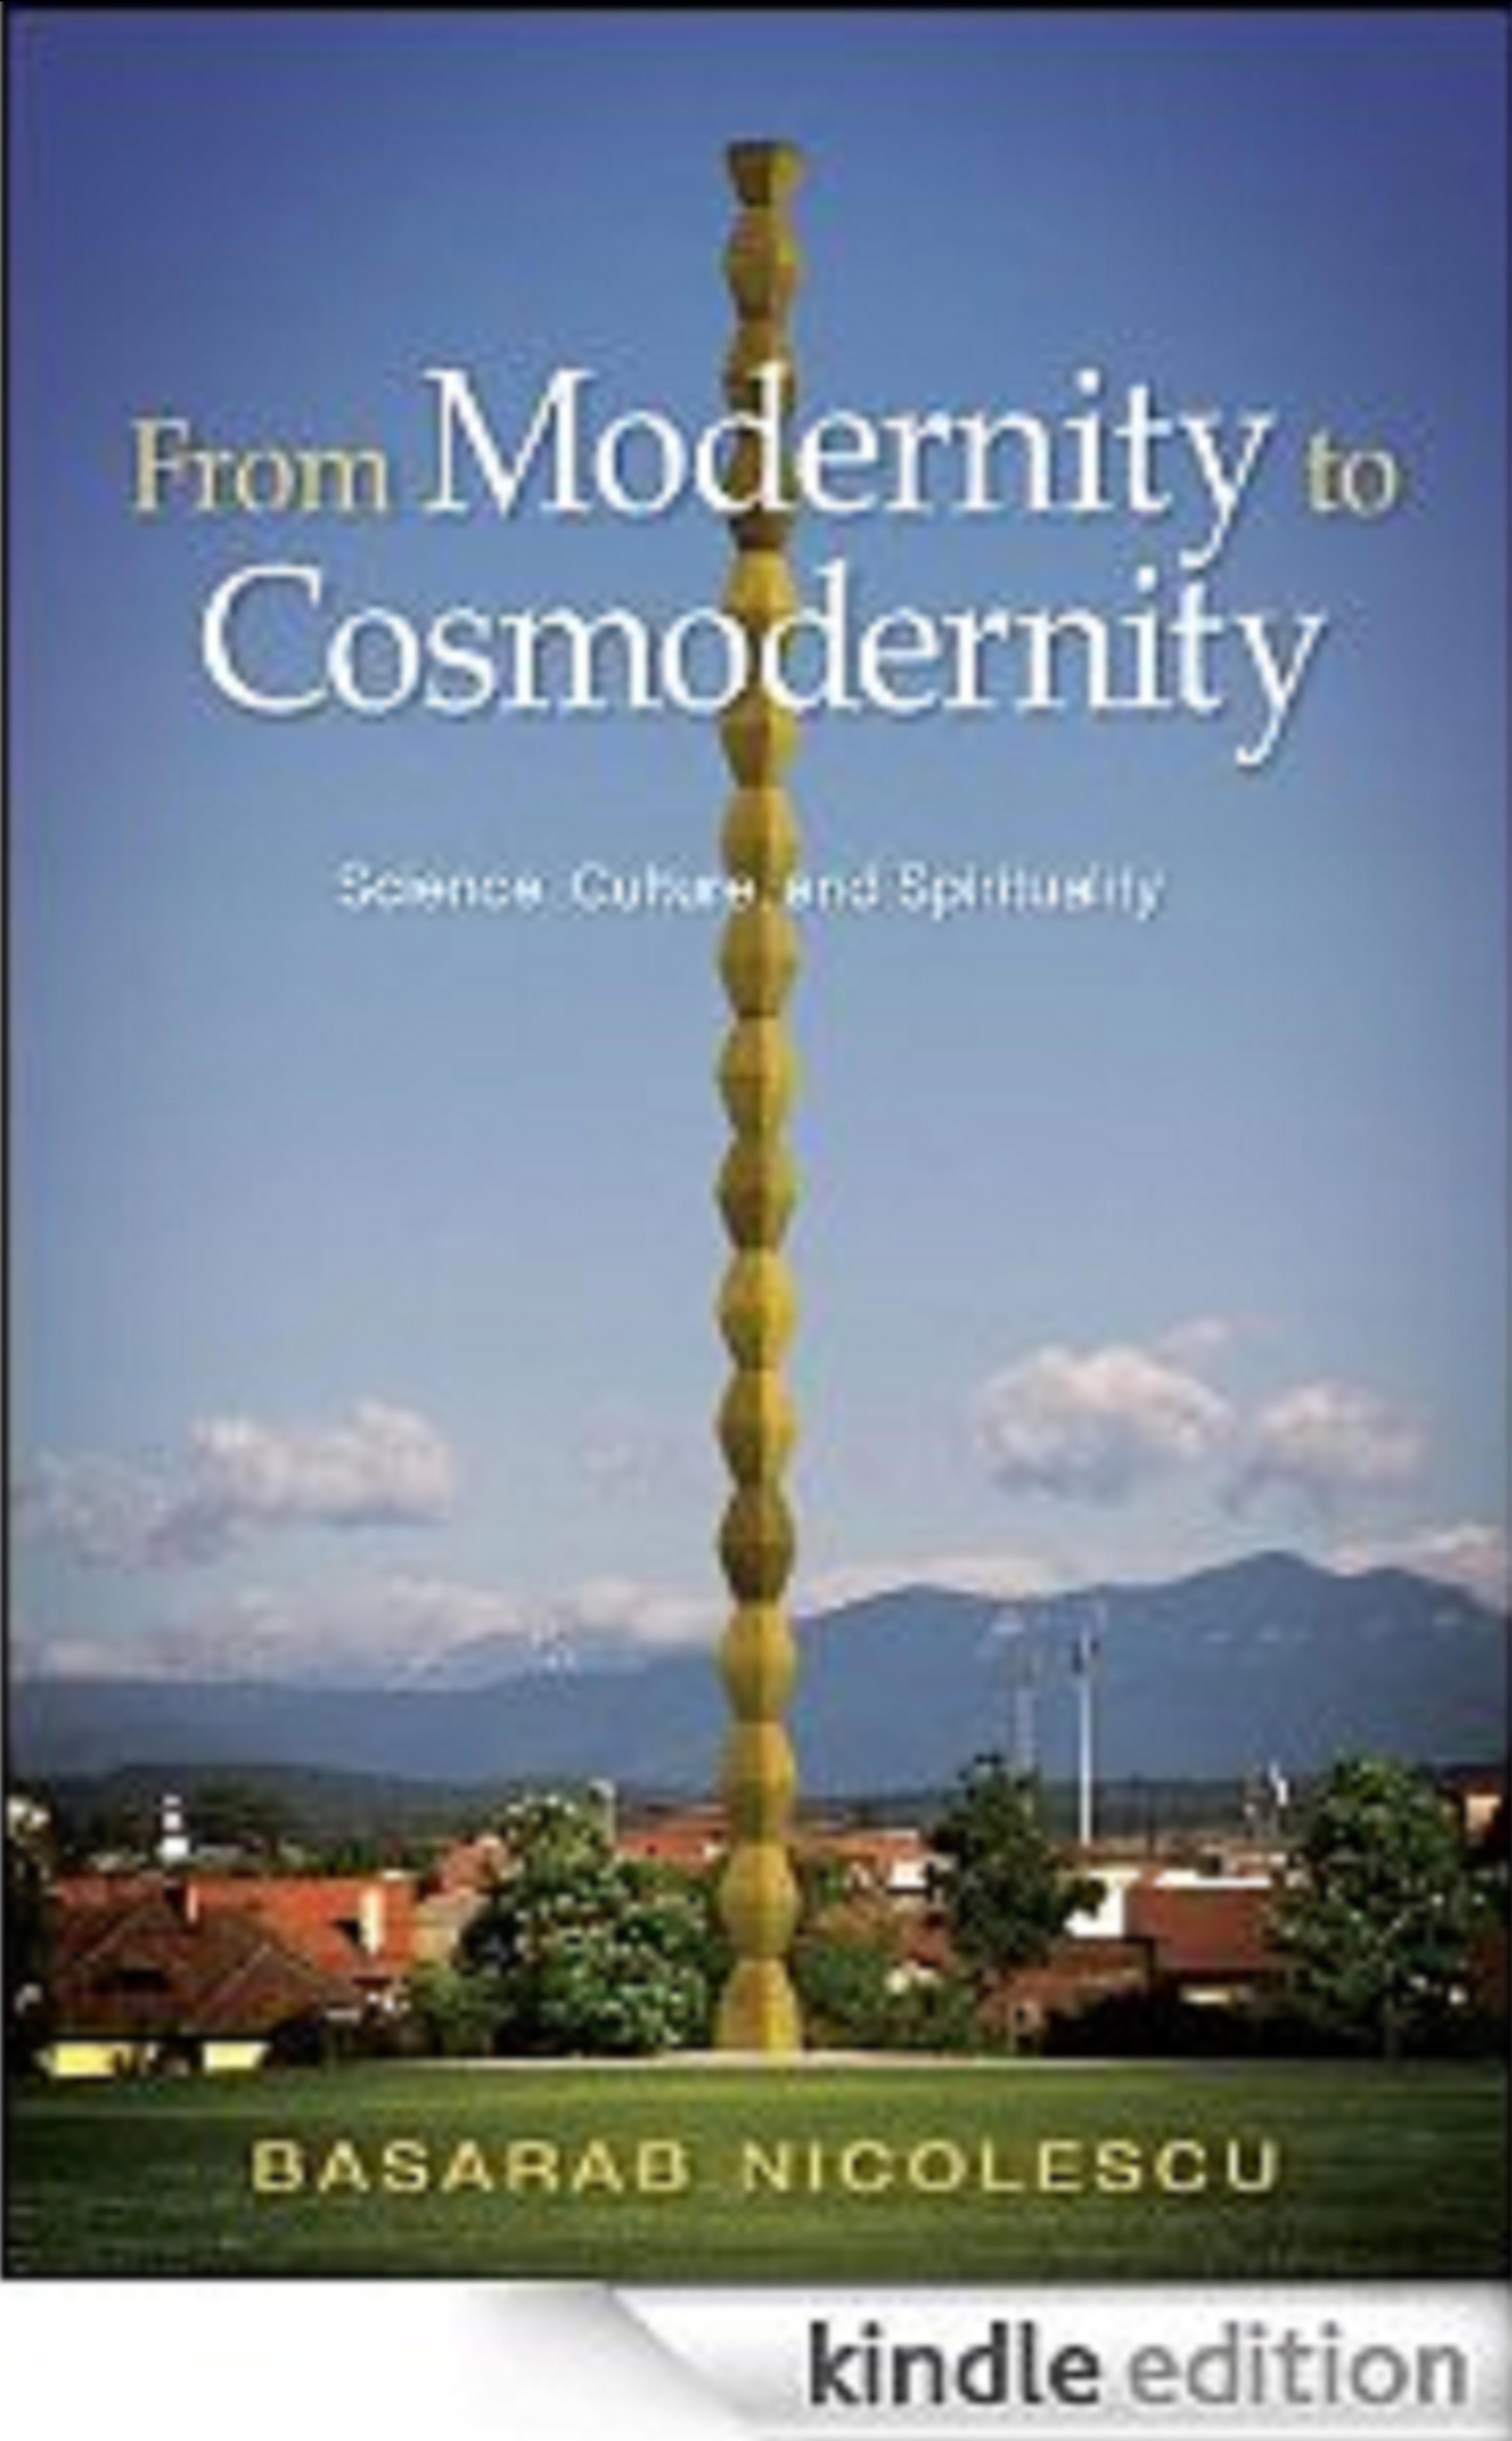 From Modernity to Cosmodernity